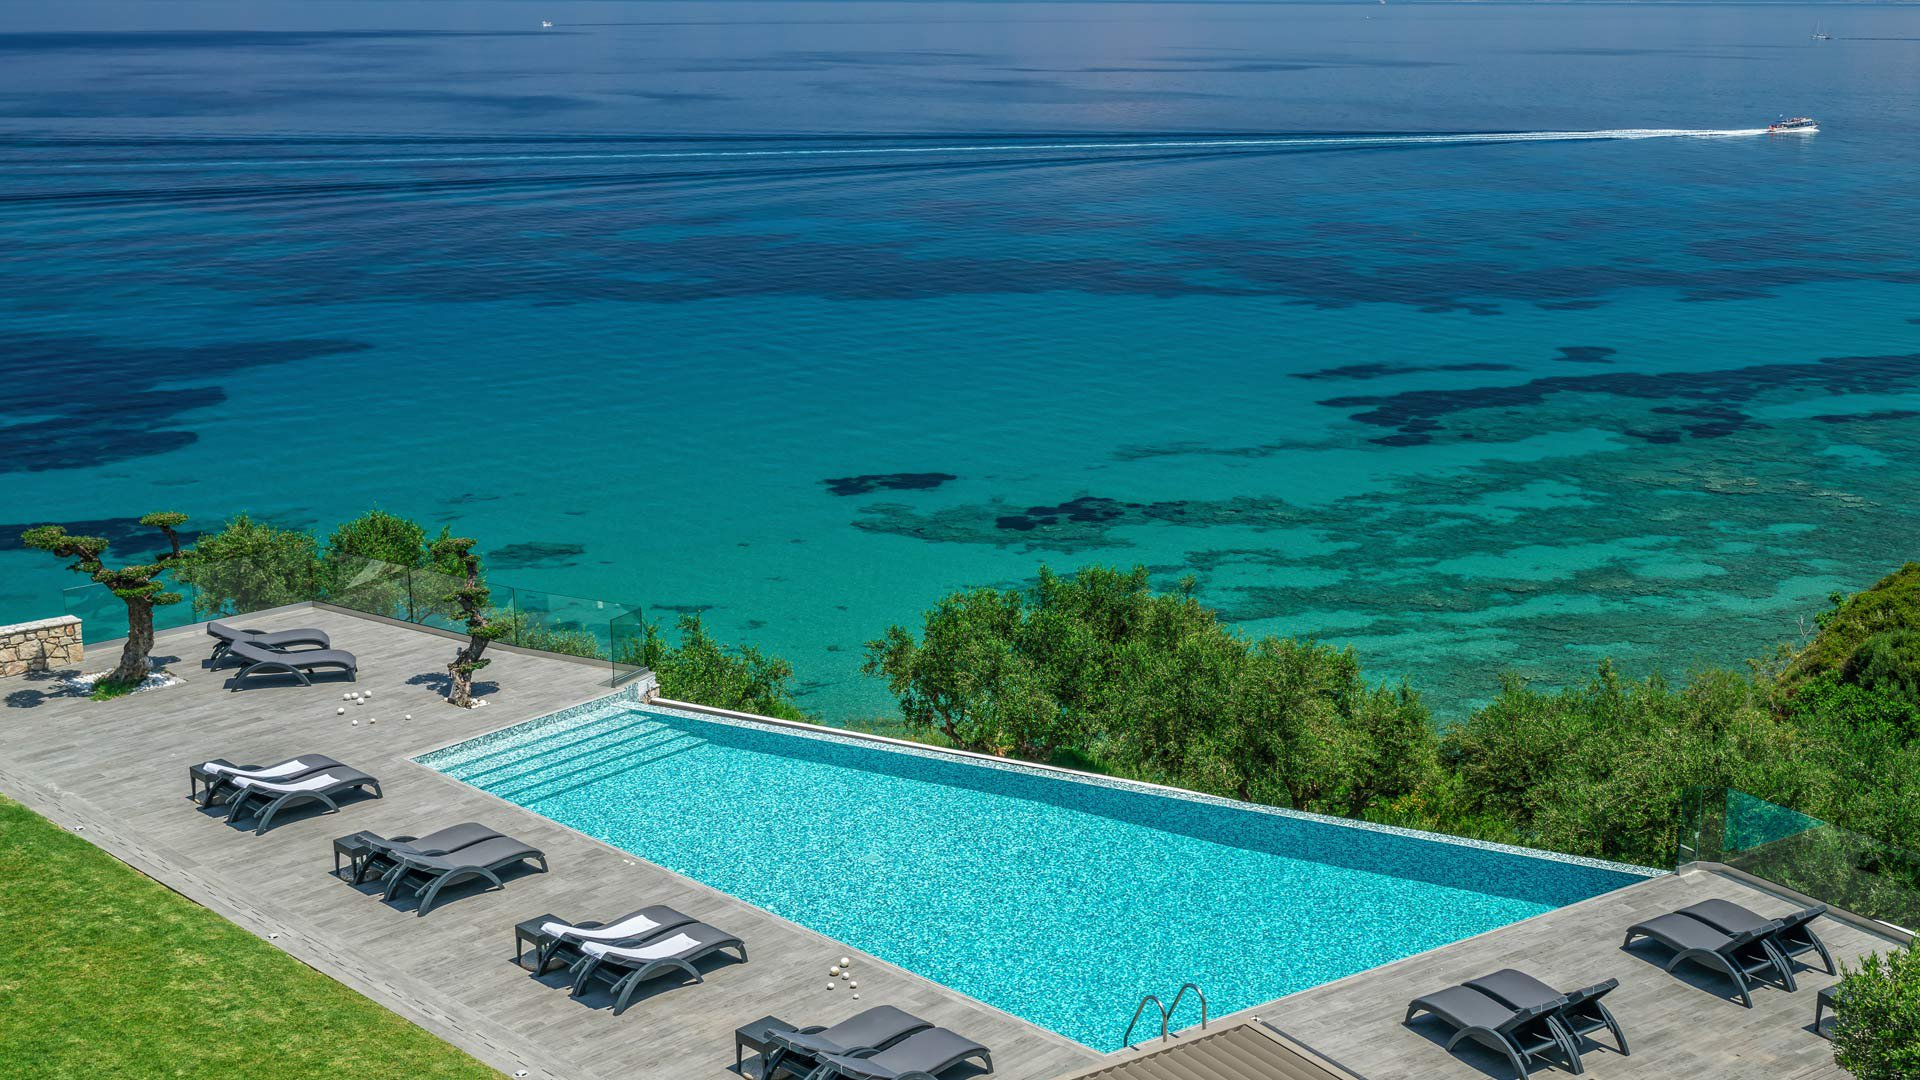 The sunbeds and the infinity pool that's merging with the Ionian Sea at Kymothoe Elite Suites in Zakynthos